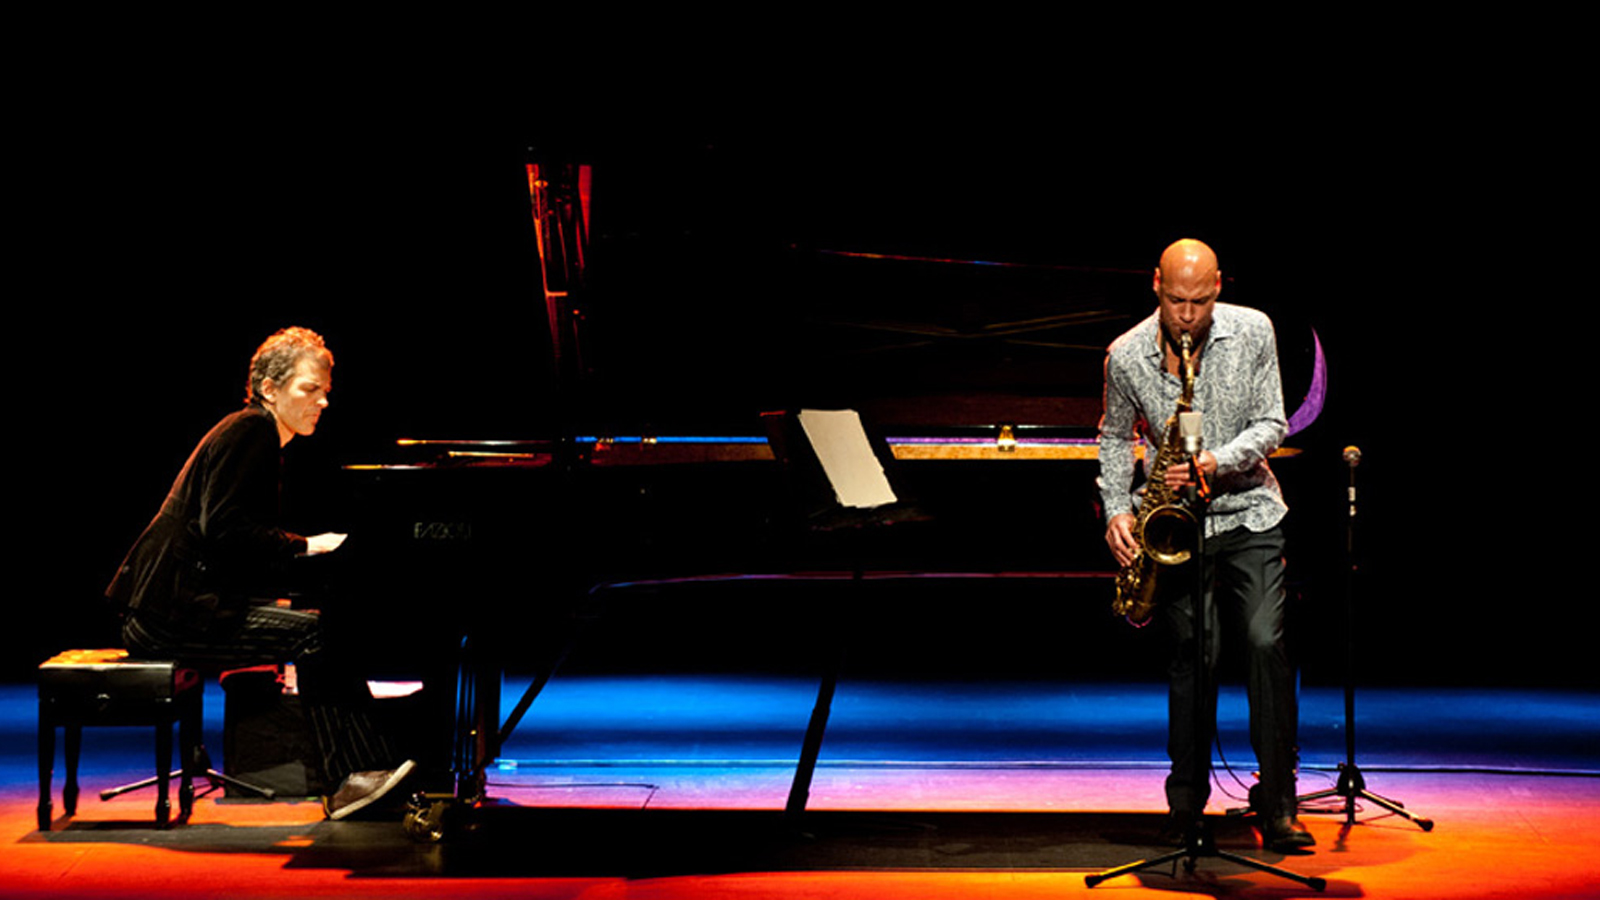 Joshua Redman and Brad Mehldau Duo